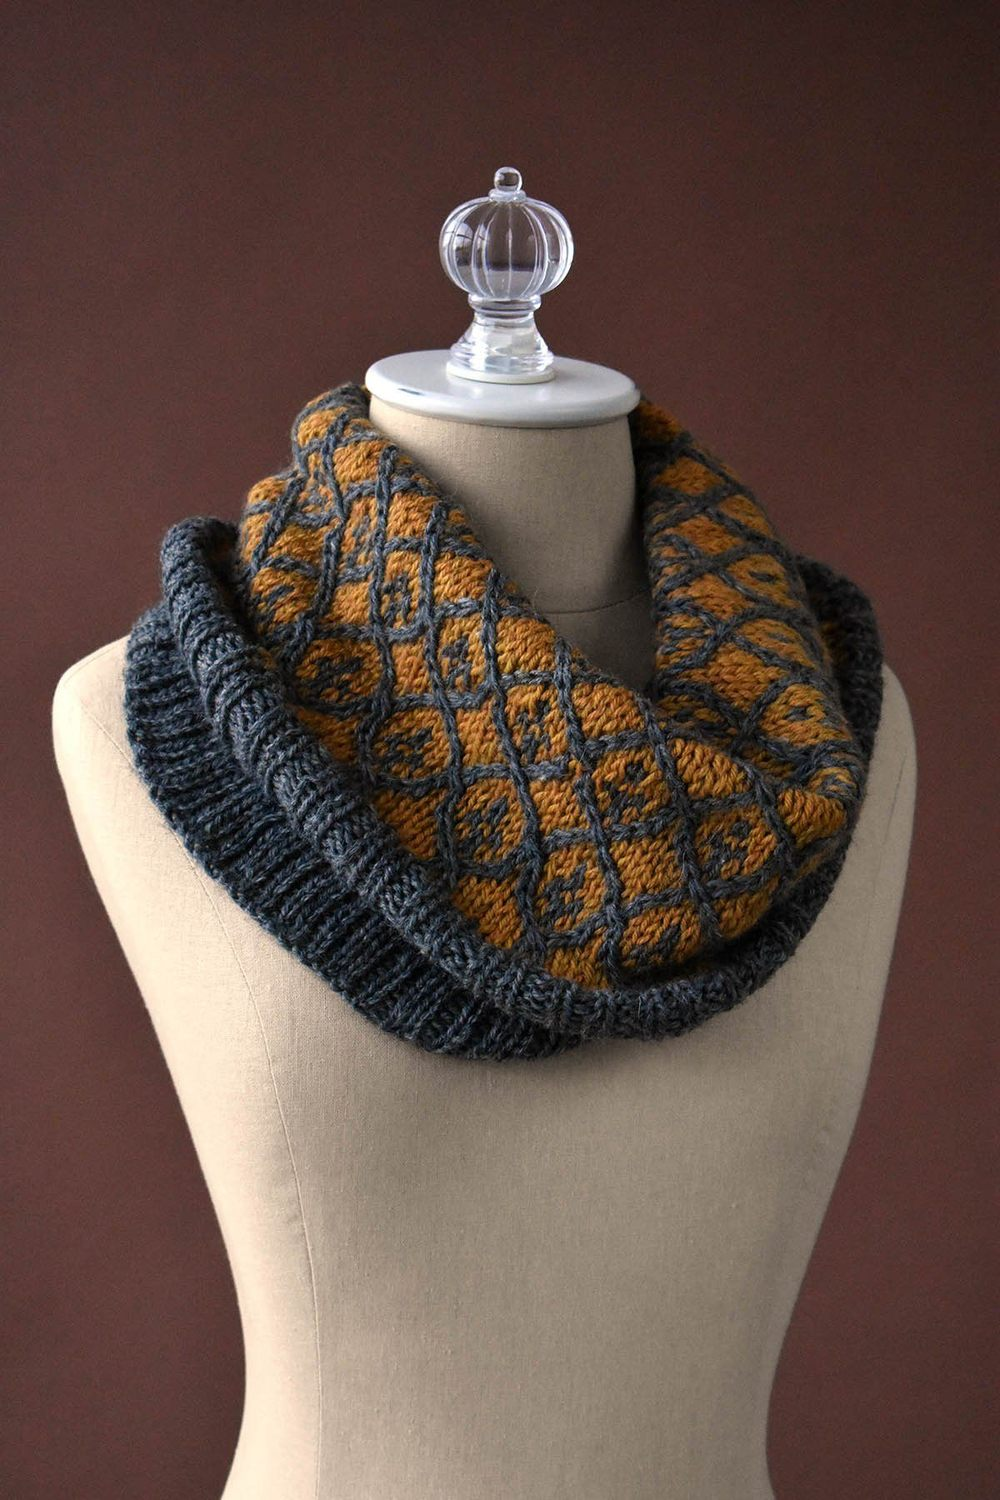 Willowwork Cowl - If you're looking for something simple, easy and fun to make for gifting, these cowl knitting patterns are perfect to do just that. #cowlknittingpatterns #knittingpatterns #wintercowlknittingpatterns